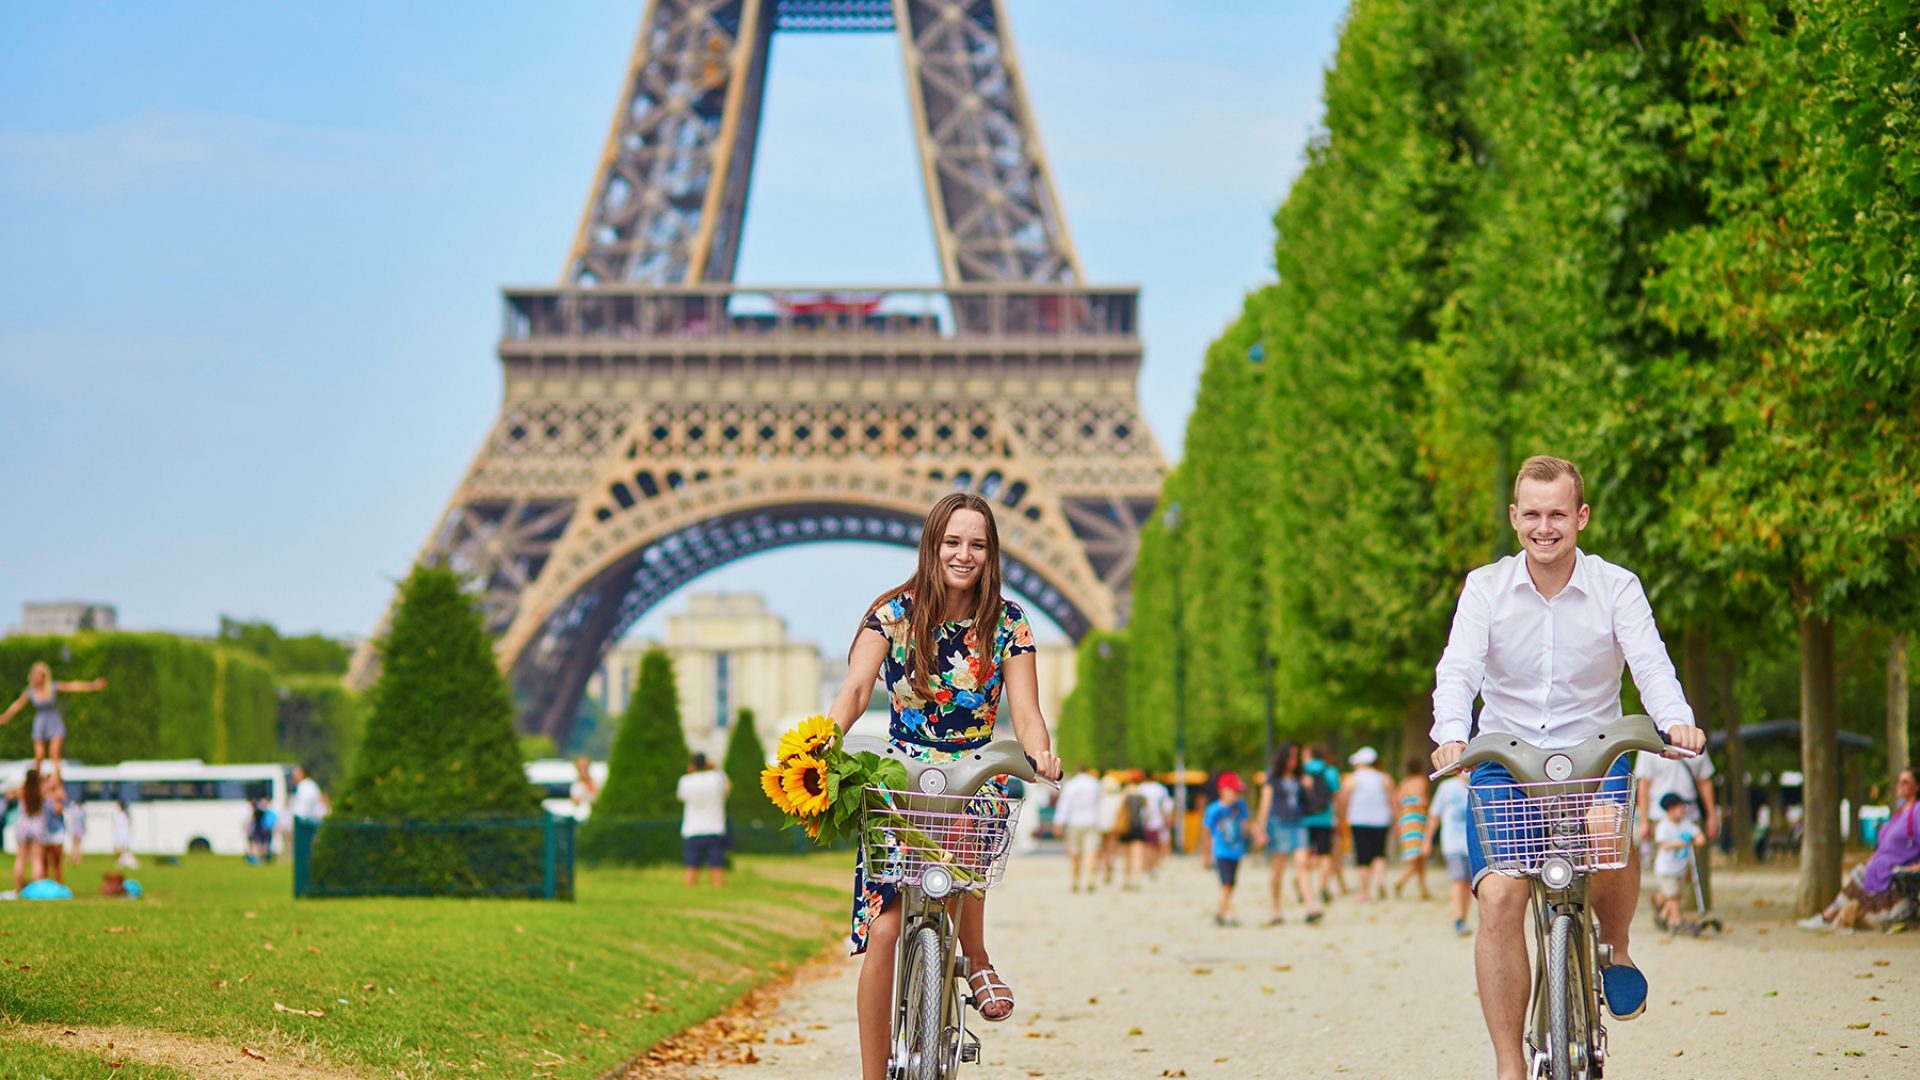 Things to do in France